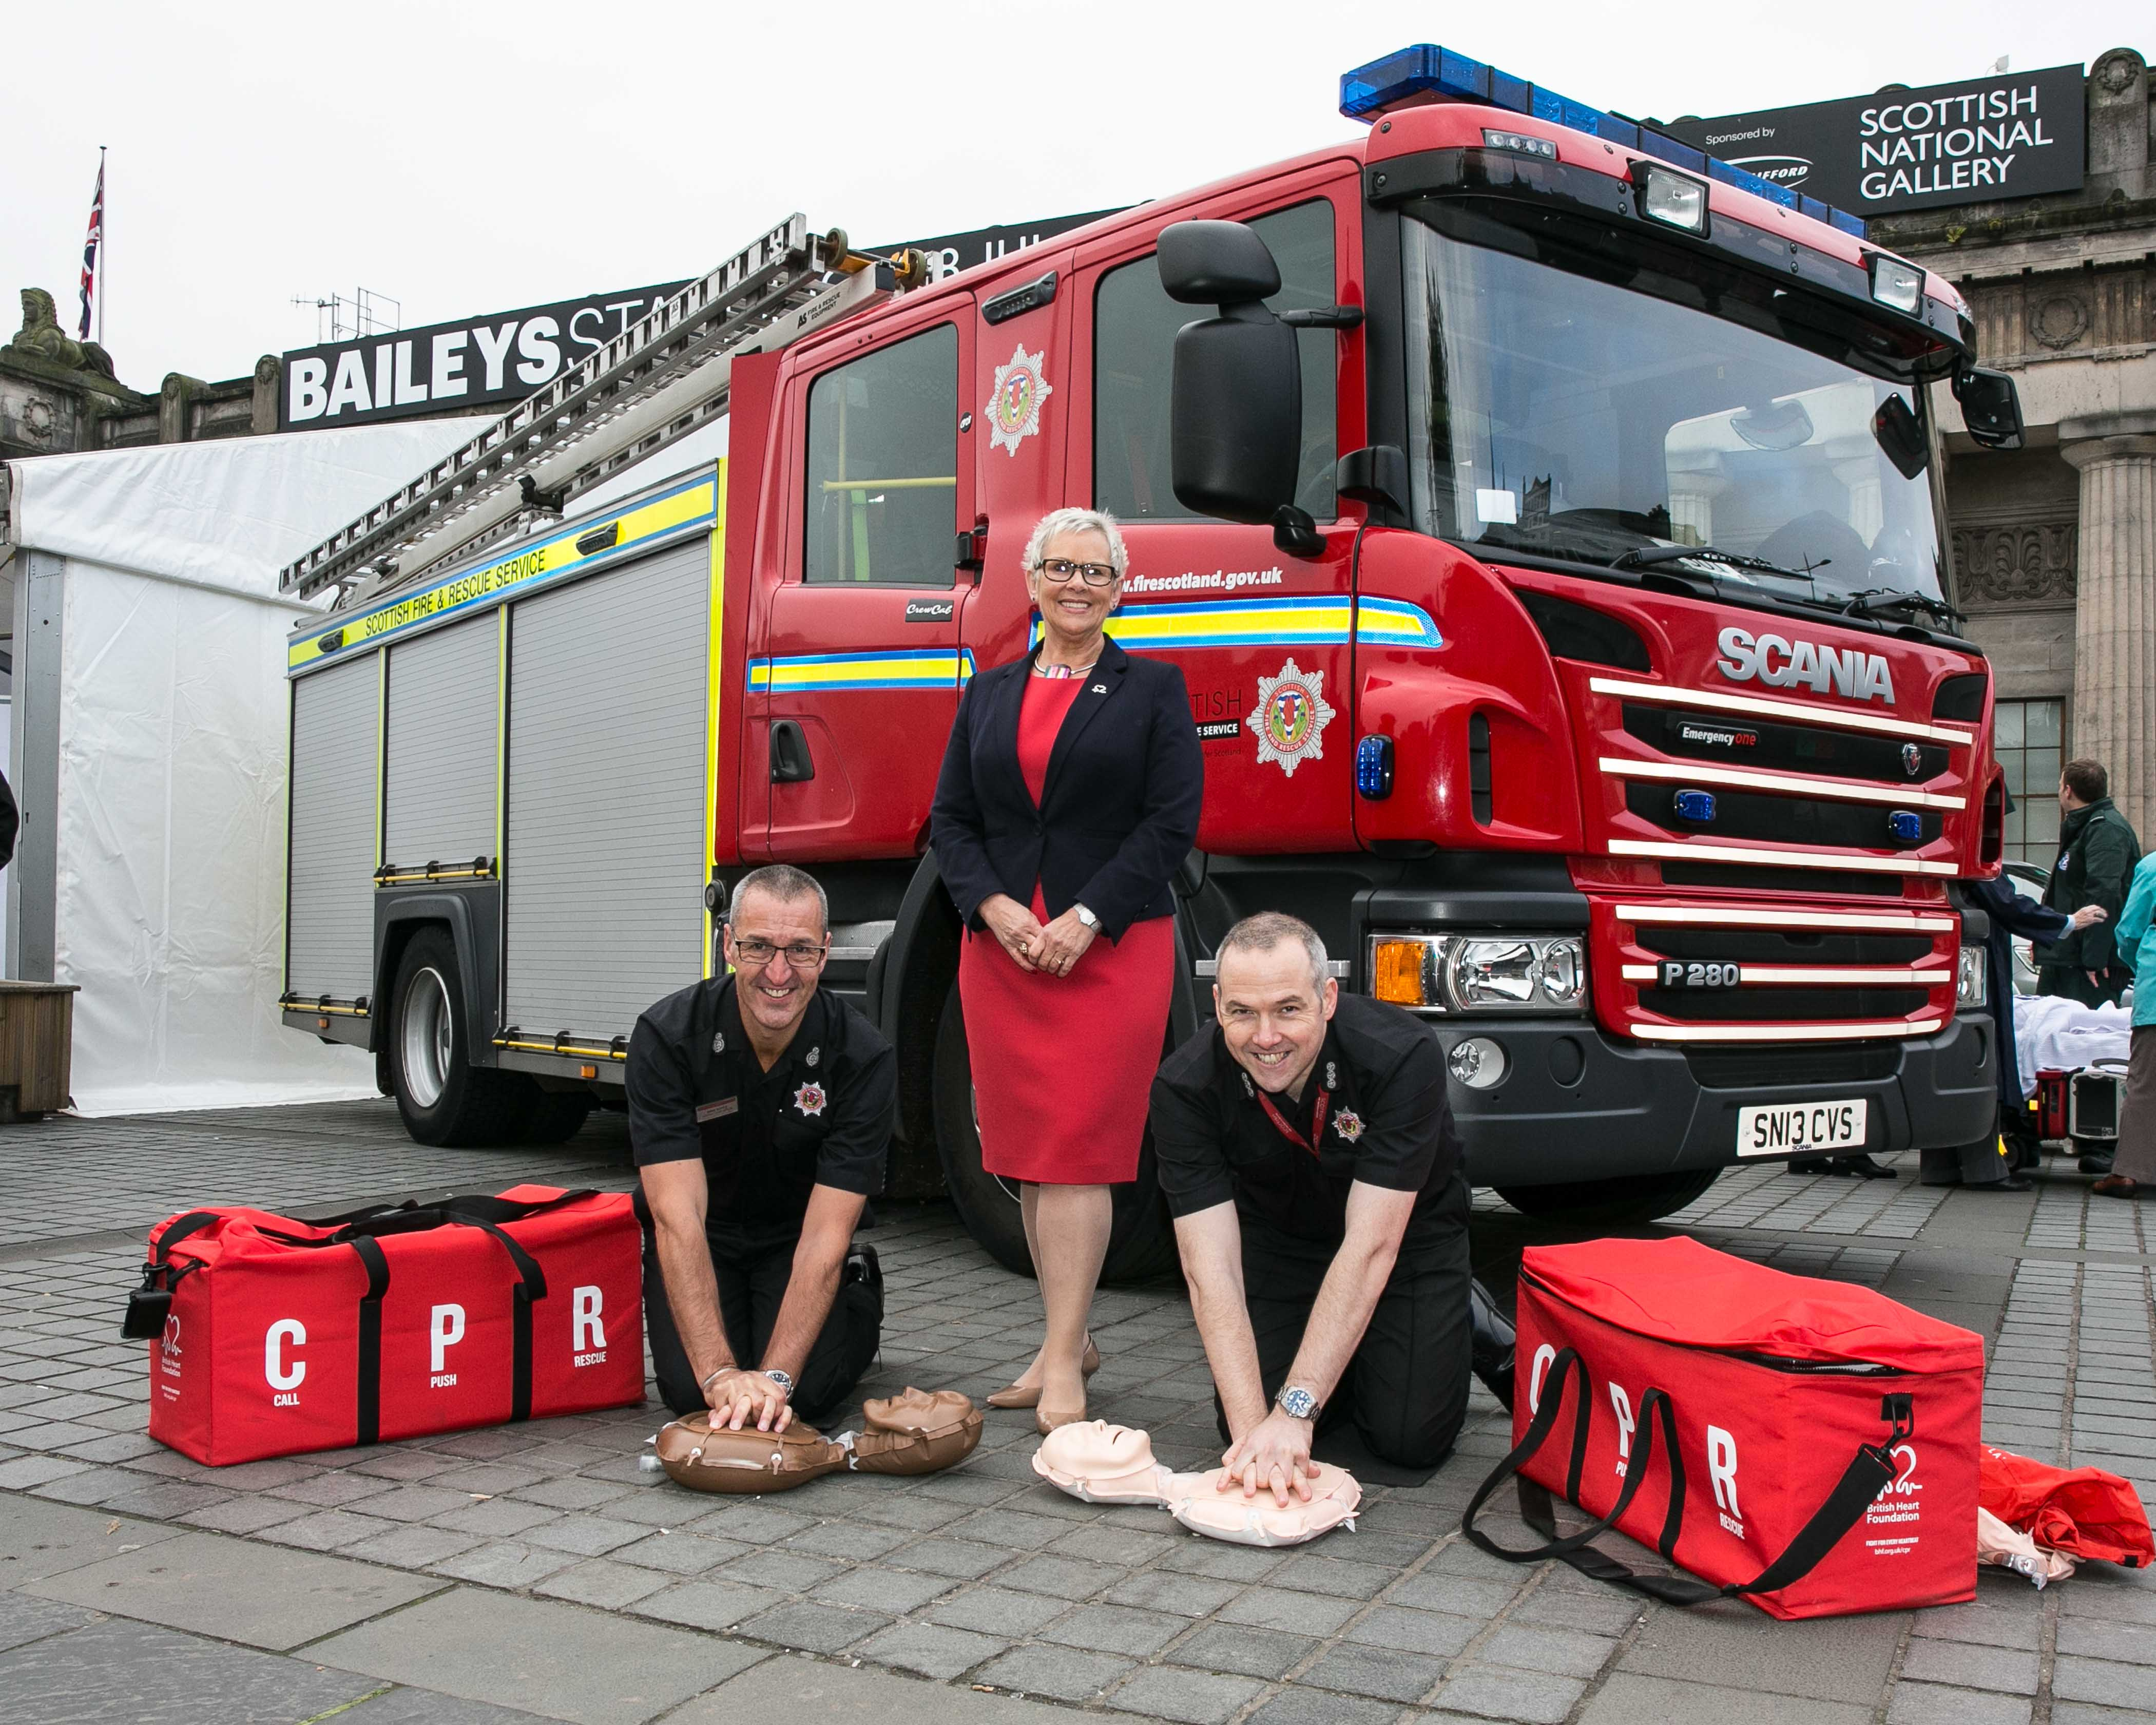 SFRS call to Ross-shire residents to visit to their local station to learn CPR